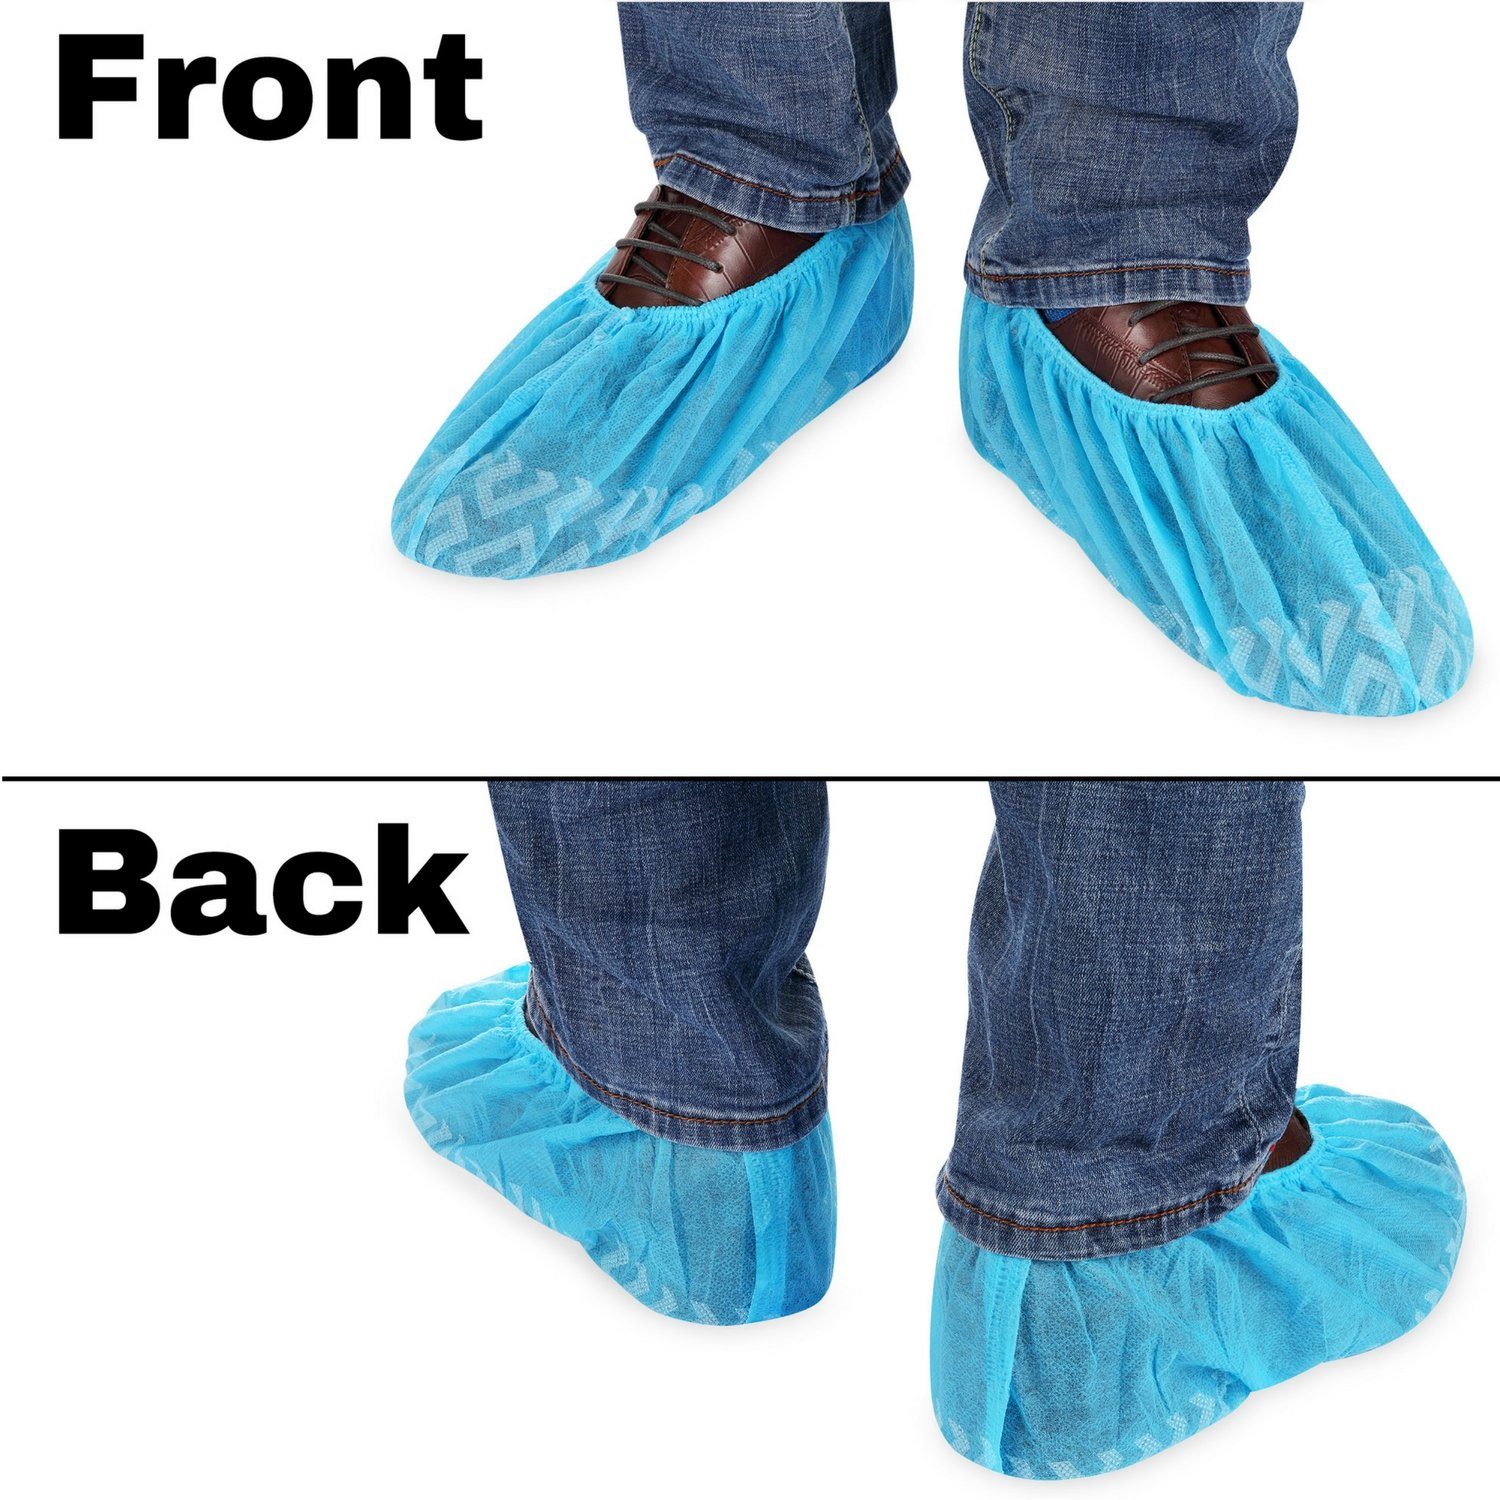 MIFFLIN Disposable Shoe Covers (Blue, 120 Pieces) Durable Boot Covers, Non-Slip Polypropylene, One Size Fits Most by MIFFLIN (Image #4)